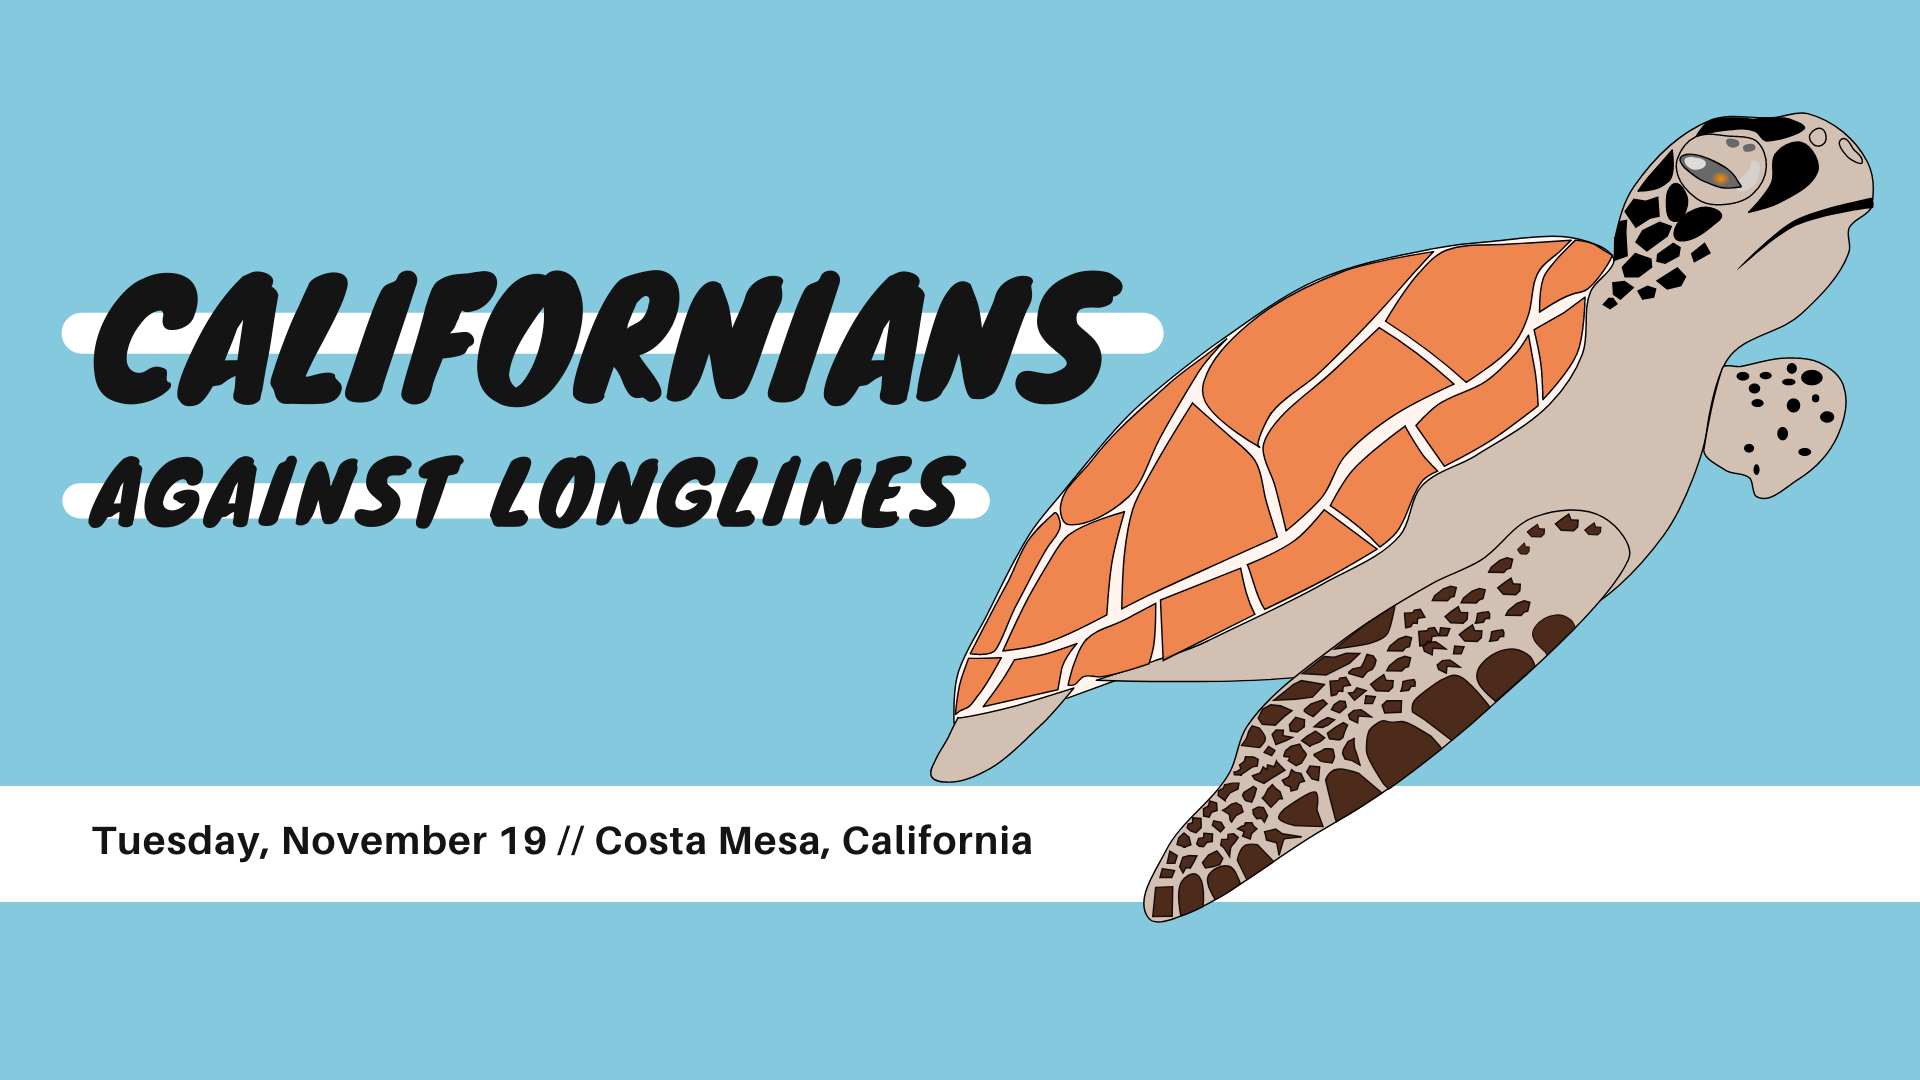 [ADVISORY] Tuesday rally planned to stop deadly longline fishery off California coast